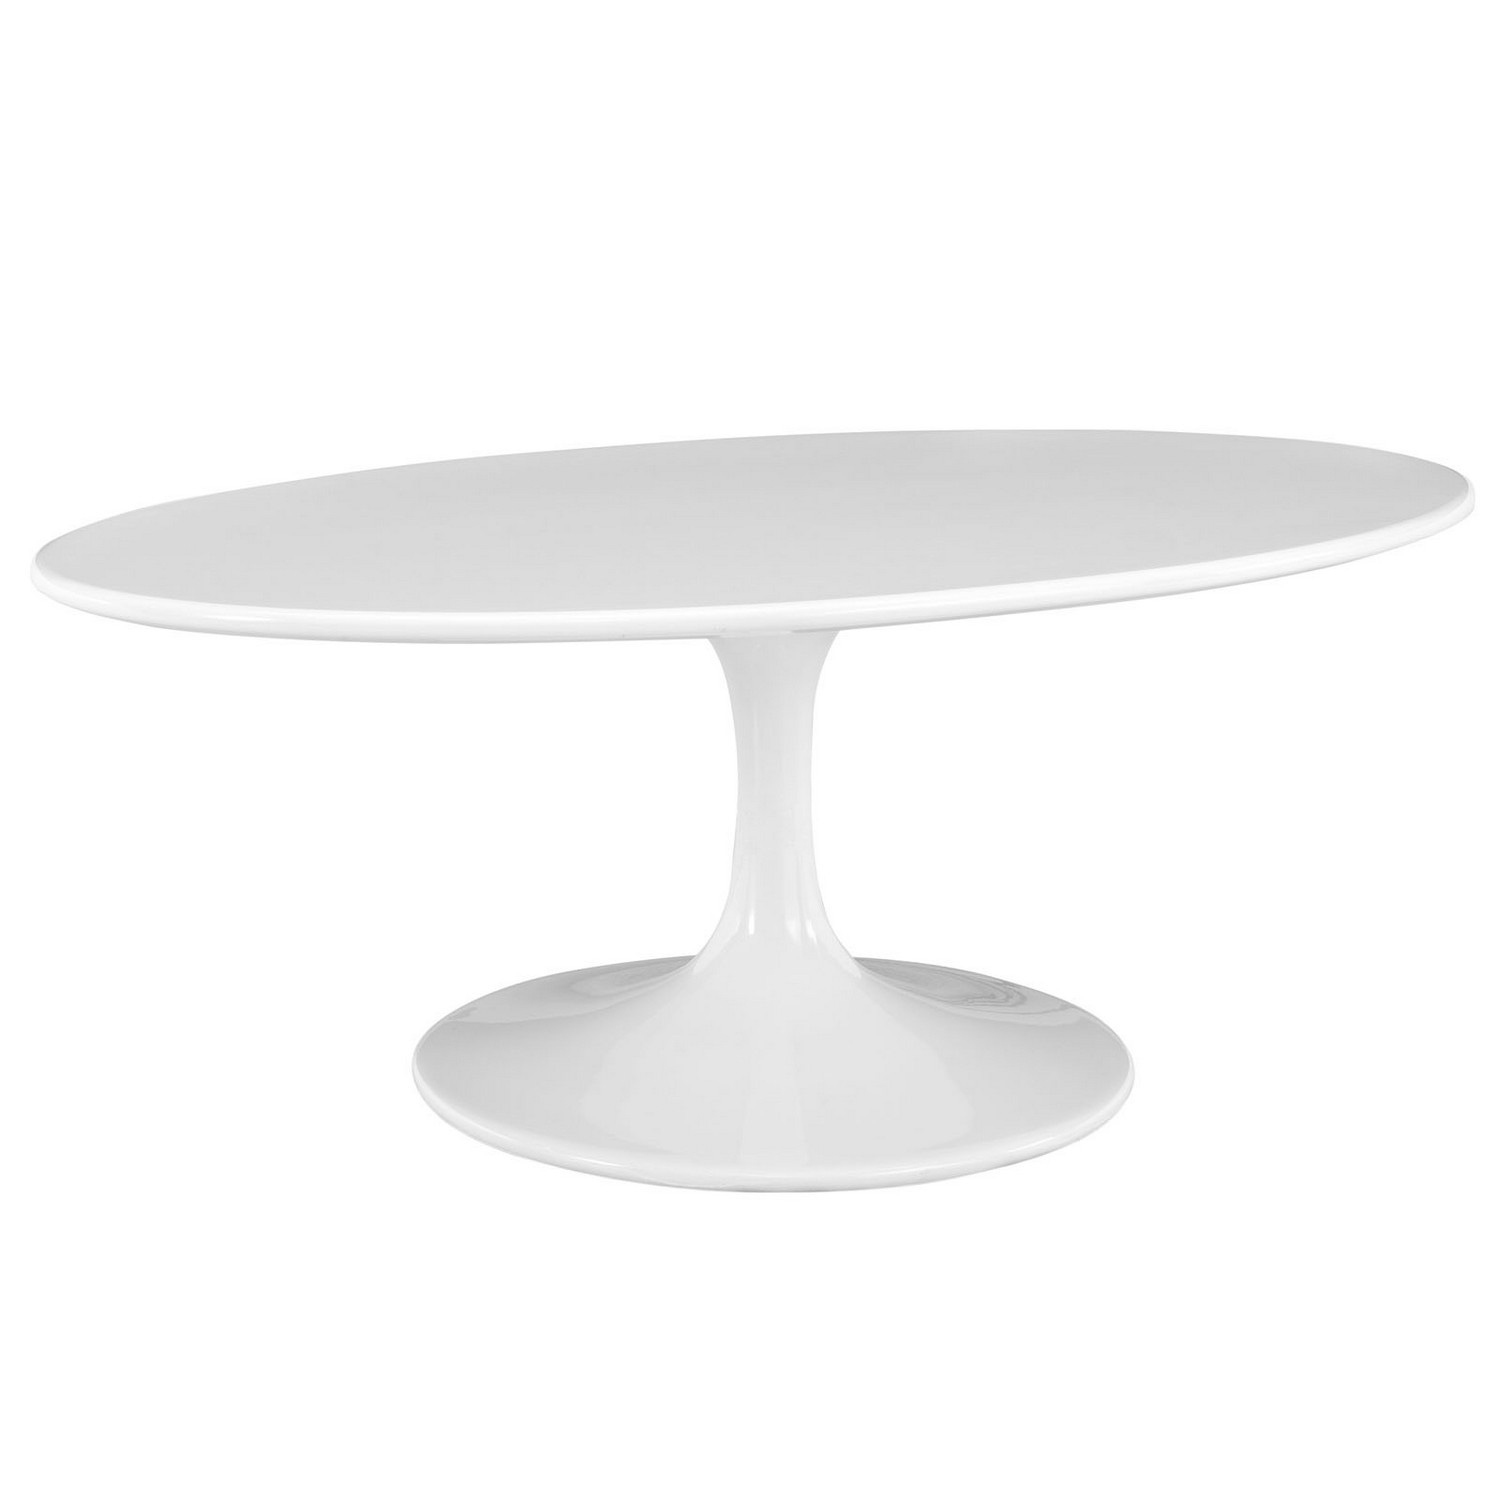 Modway Lippa 42 Oval-Shaped Wood Top Coffee Table - White